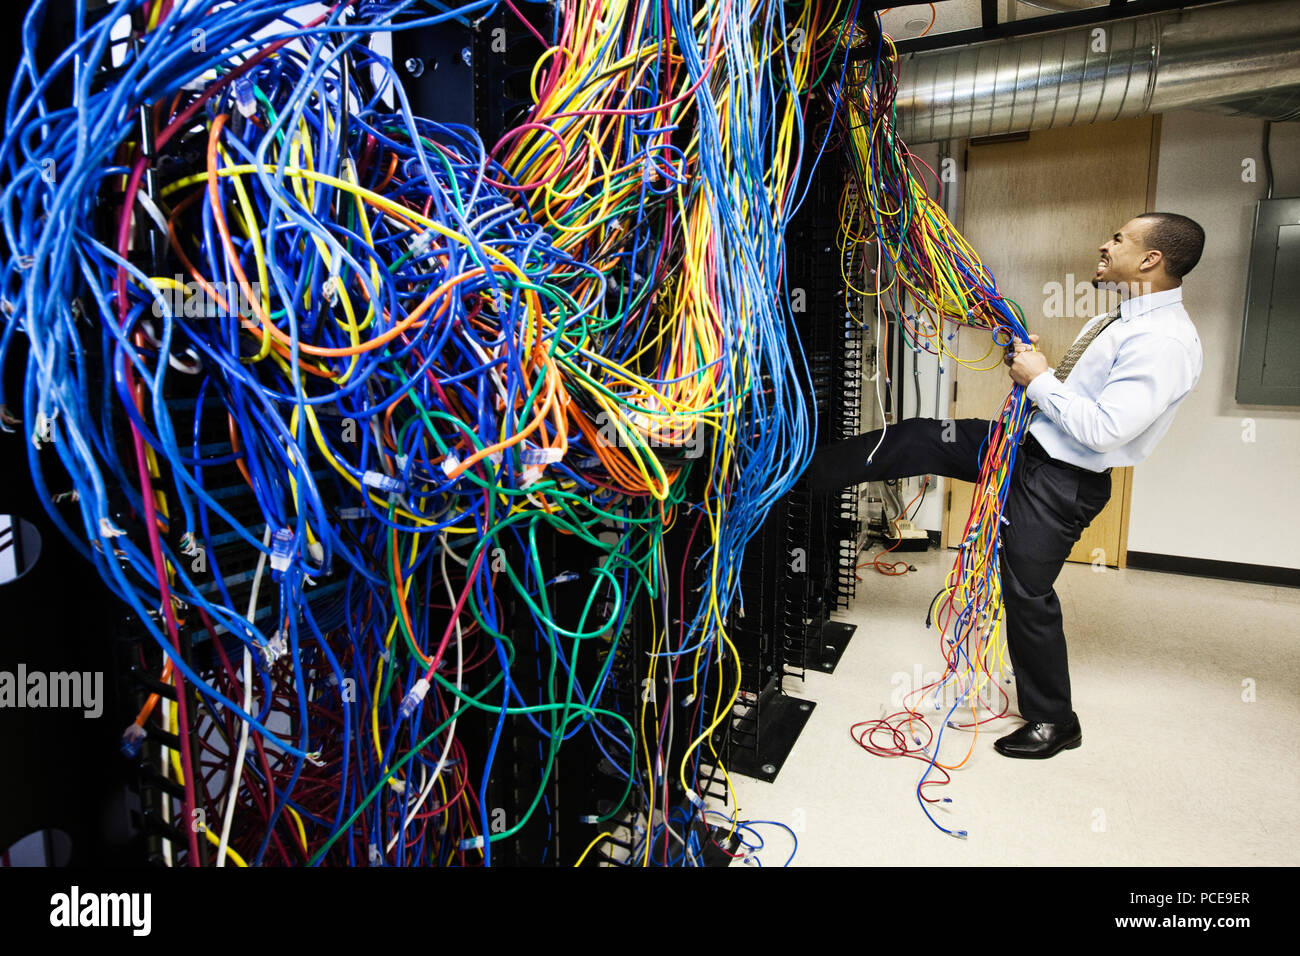 Cat5 Wiring Mess Not Lossing Diagram Computer Cat 5 Cables Stock Photos Images Alamy Rh Com Cat6 Printable